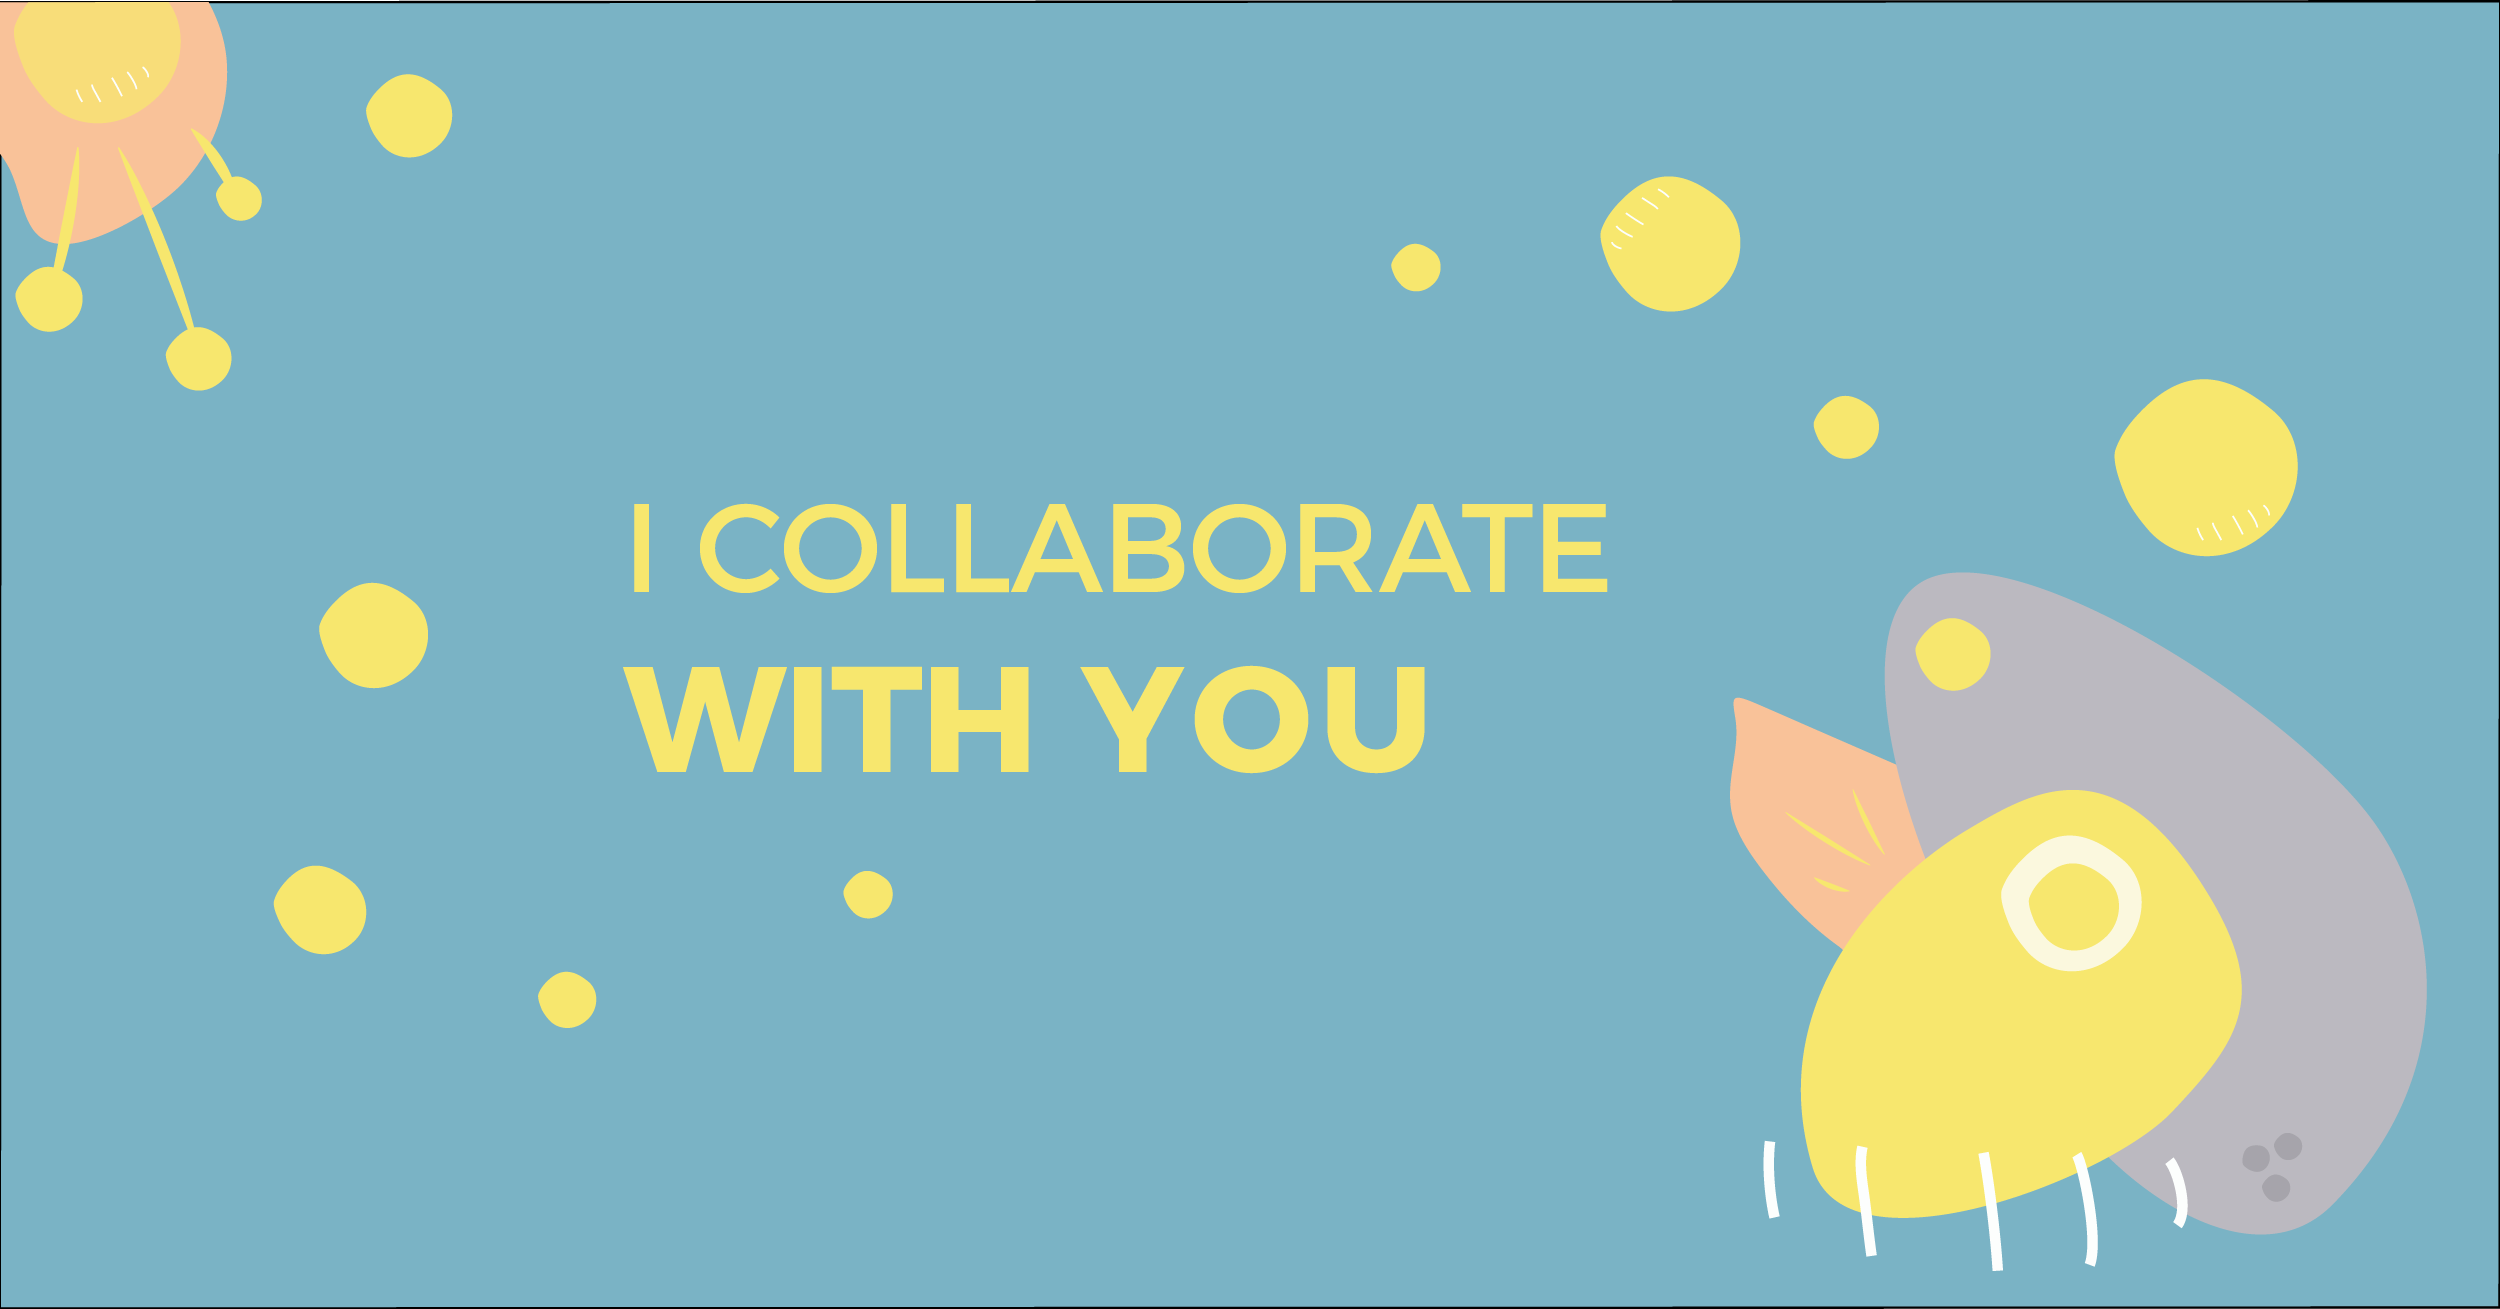 I collaborate with you